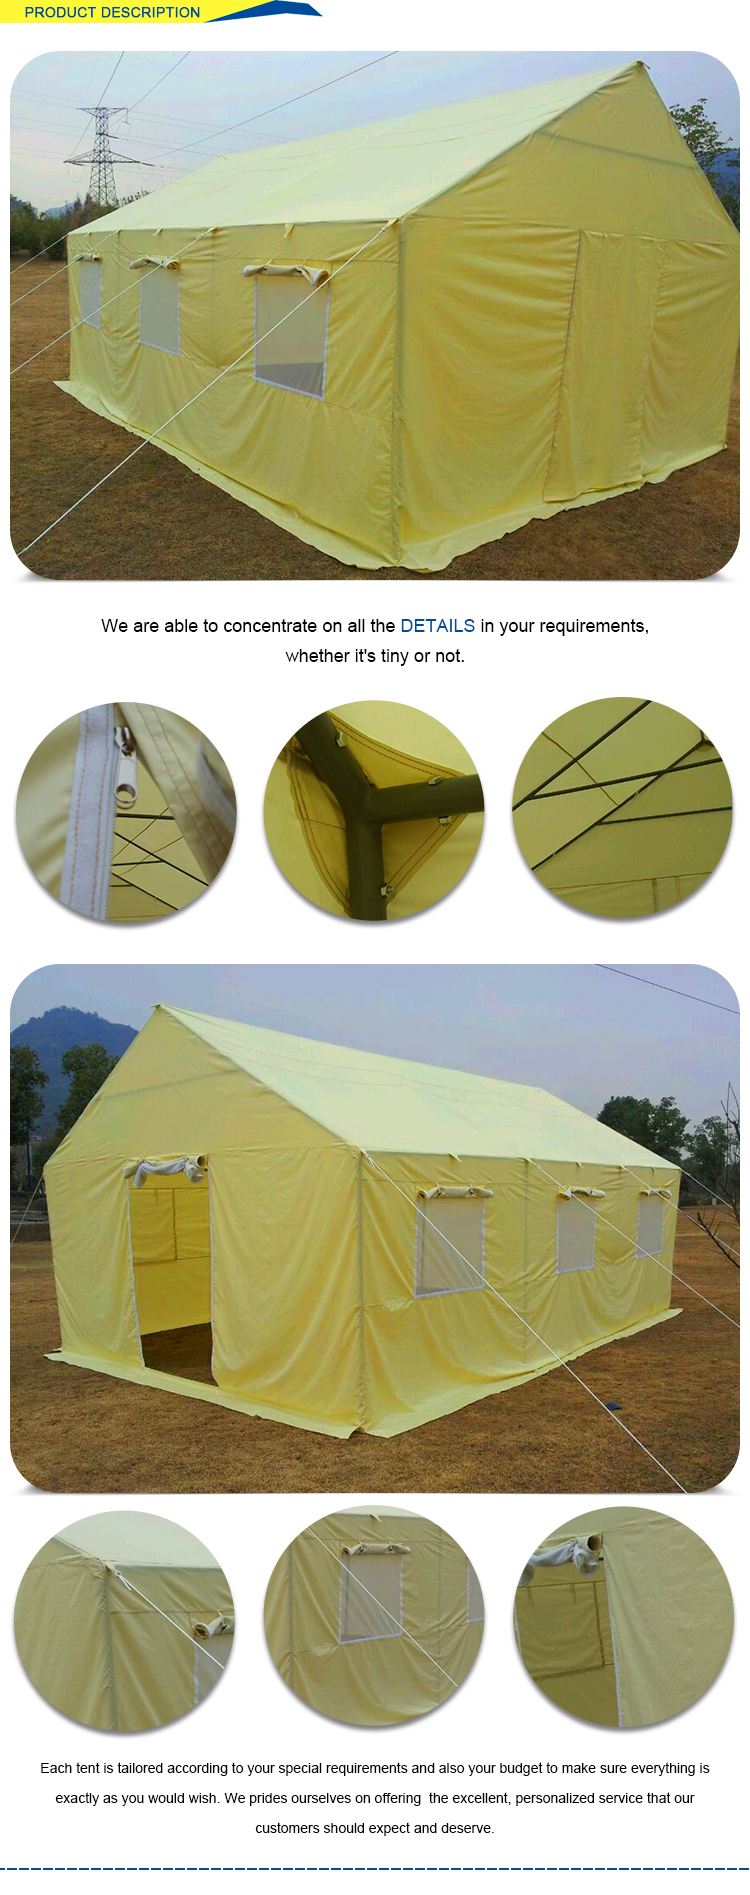 Water proof fire proof large capacity relief tent